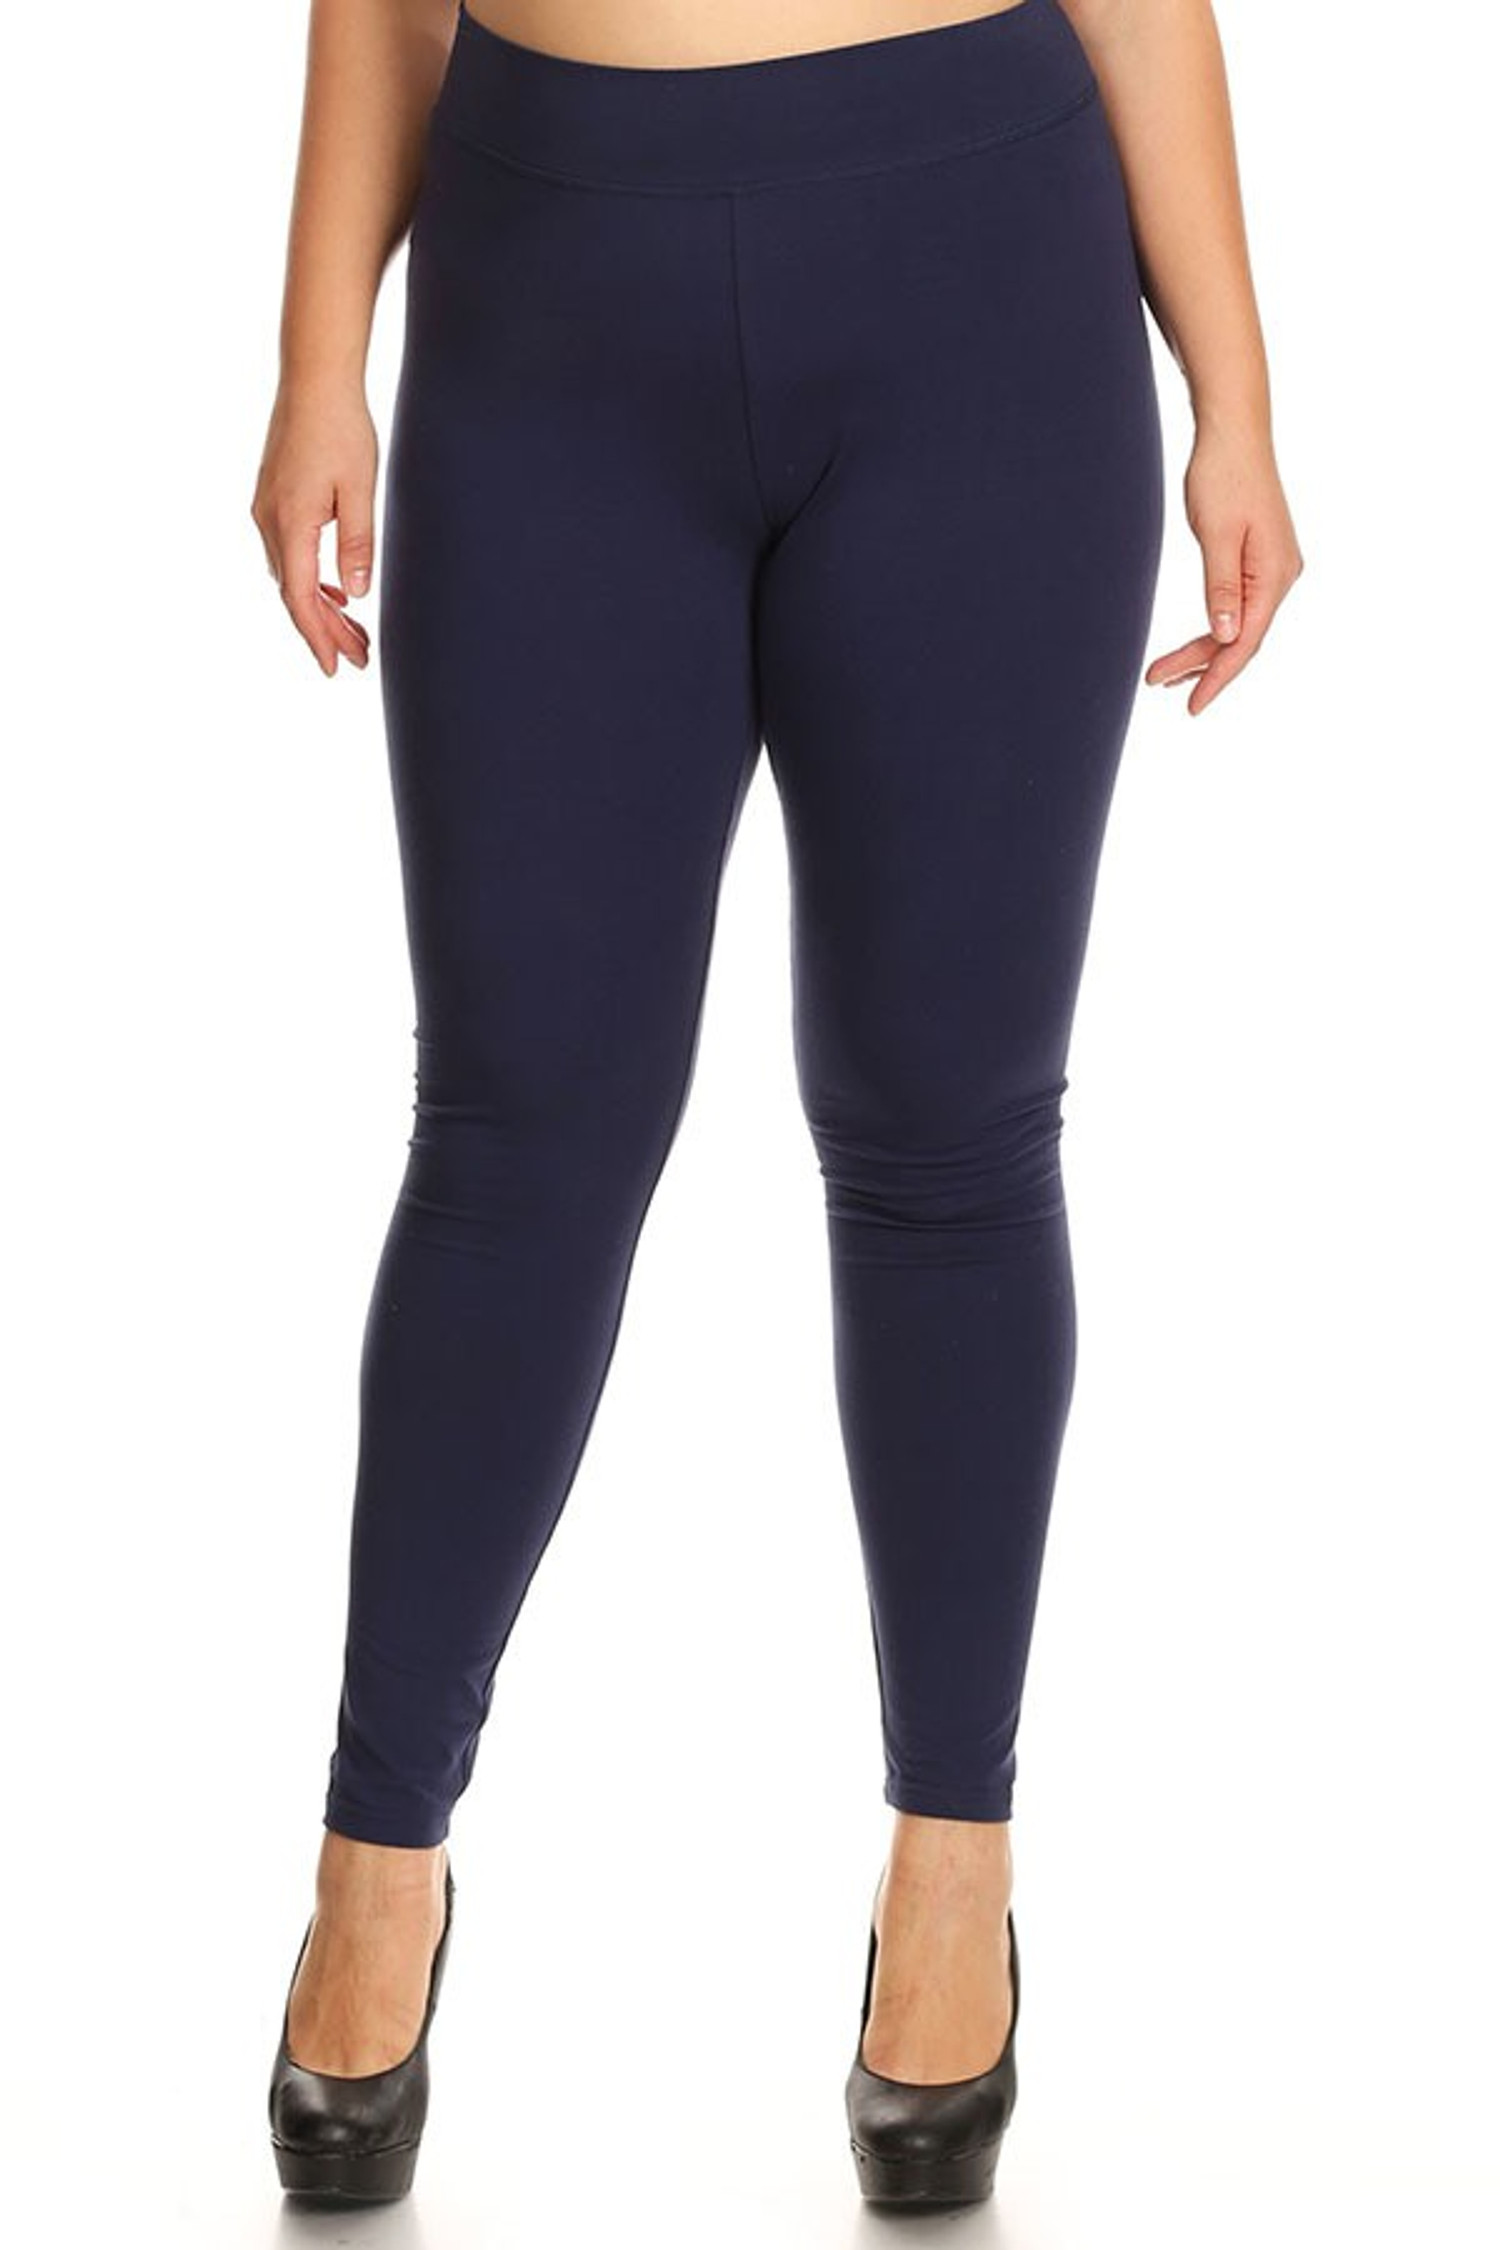 High Waisted Cotton Sport Leggings  - Plus Size